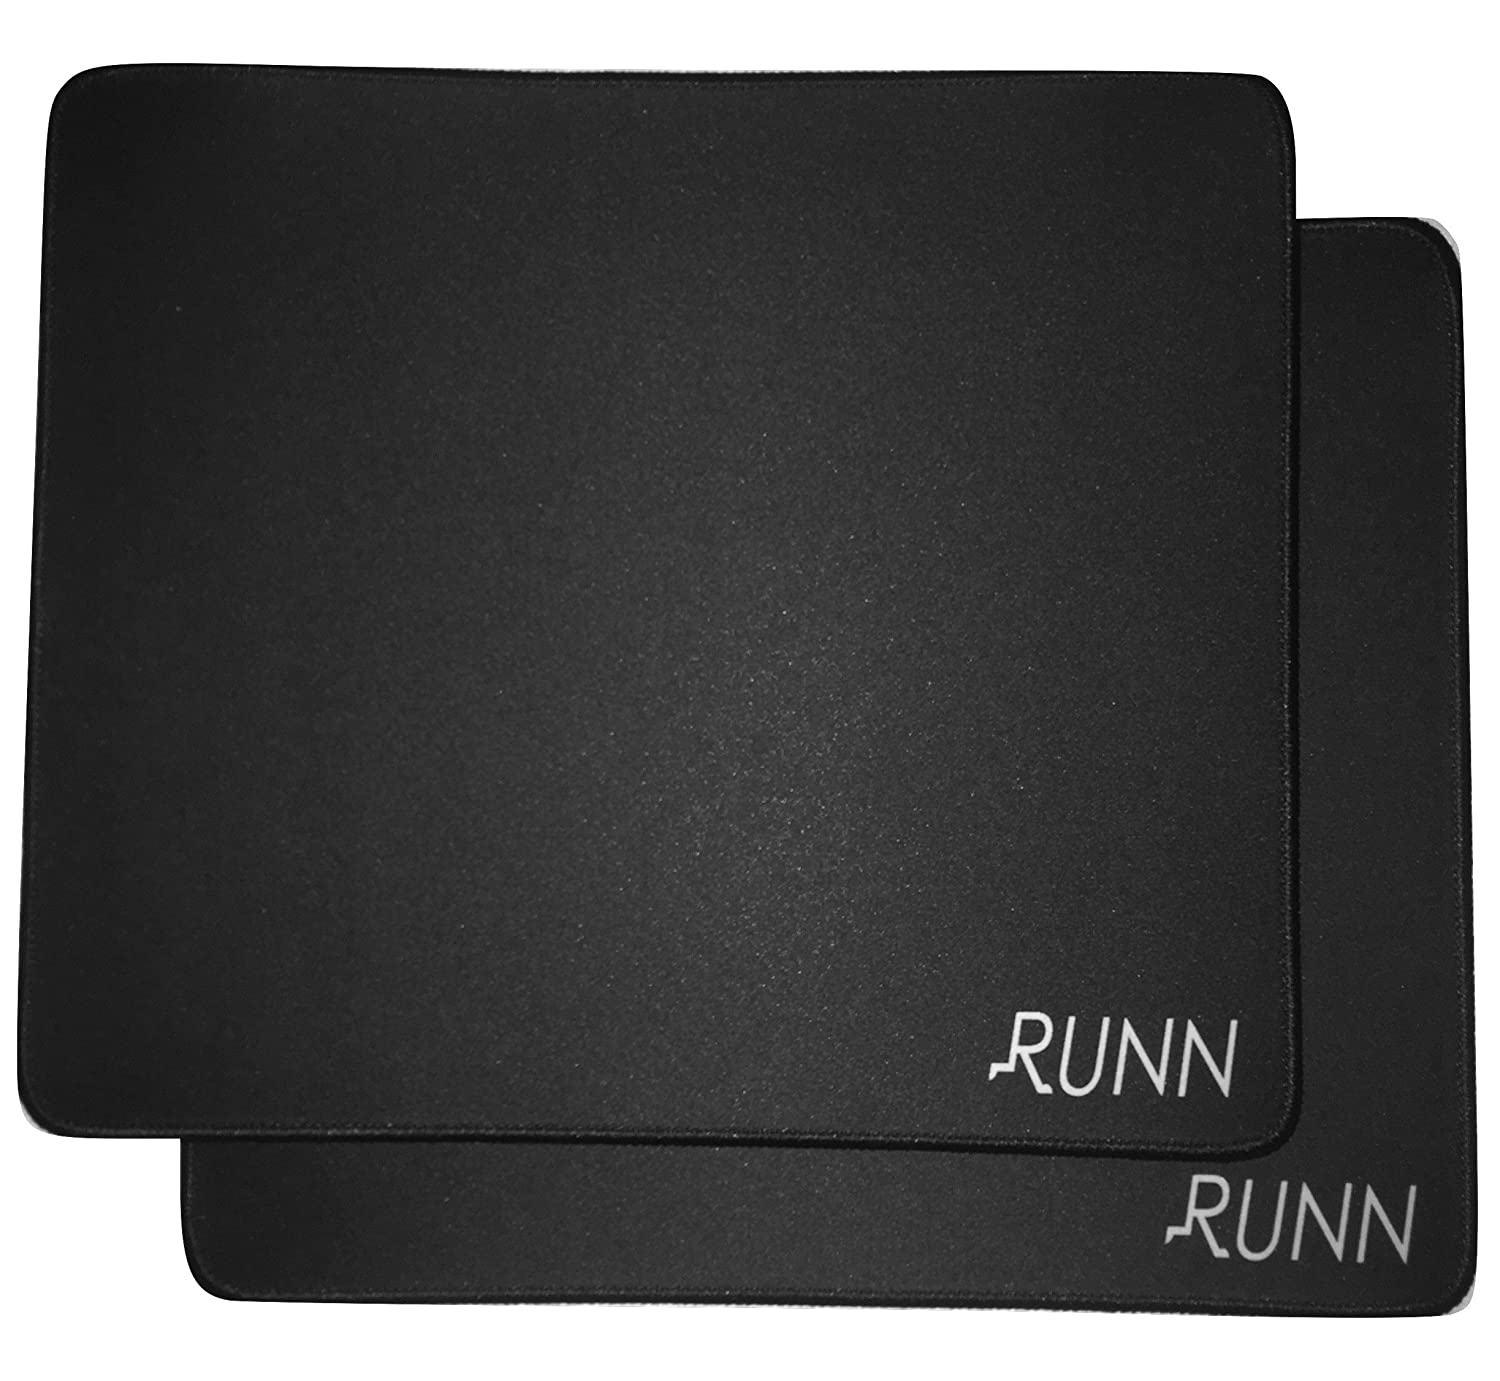 (2-Pack) Runn Large Black Gaming Mouse Pad / Mat with Stitched Edges, 3mm Thick, Smooth surface, for Speed and Precision